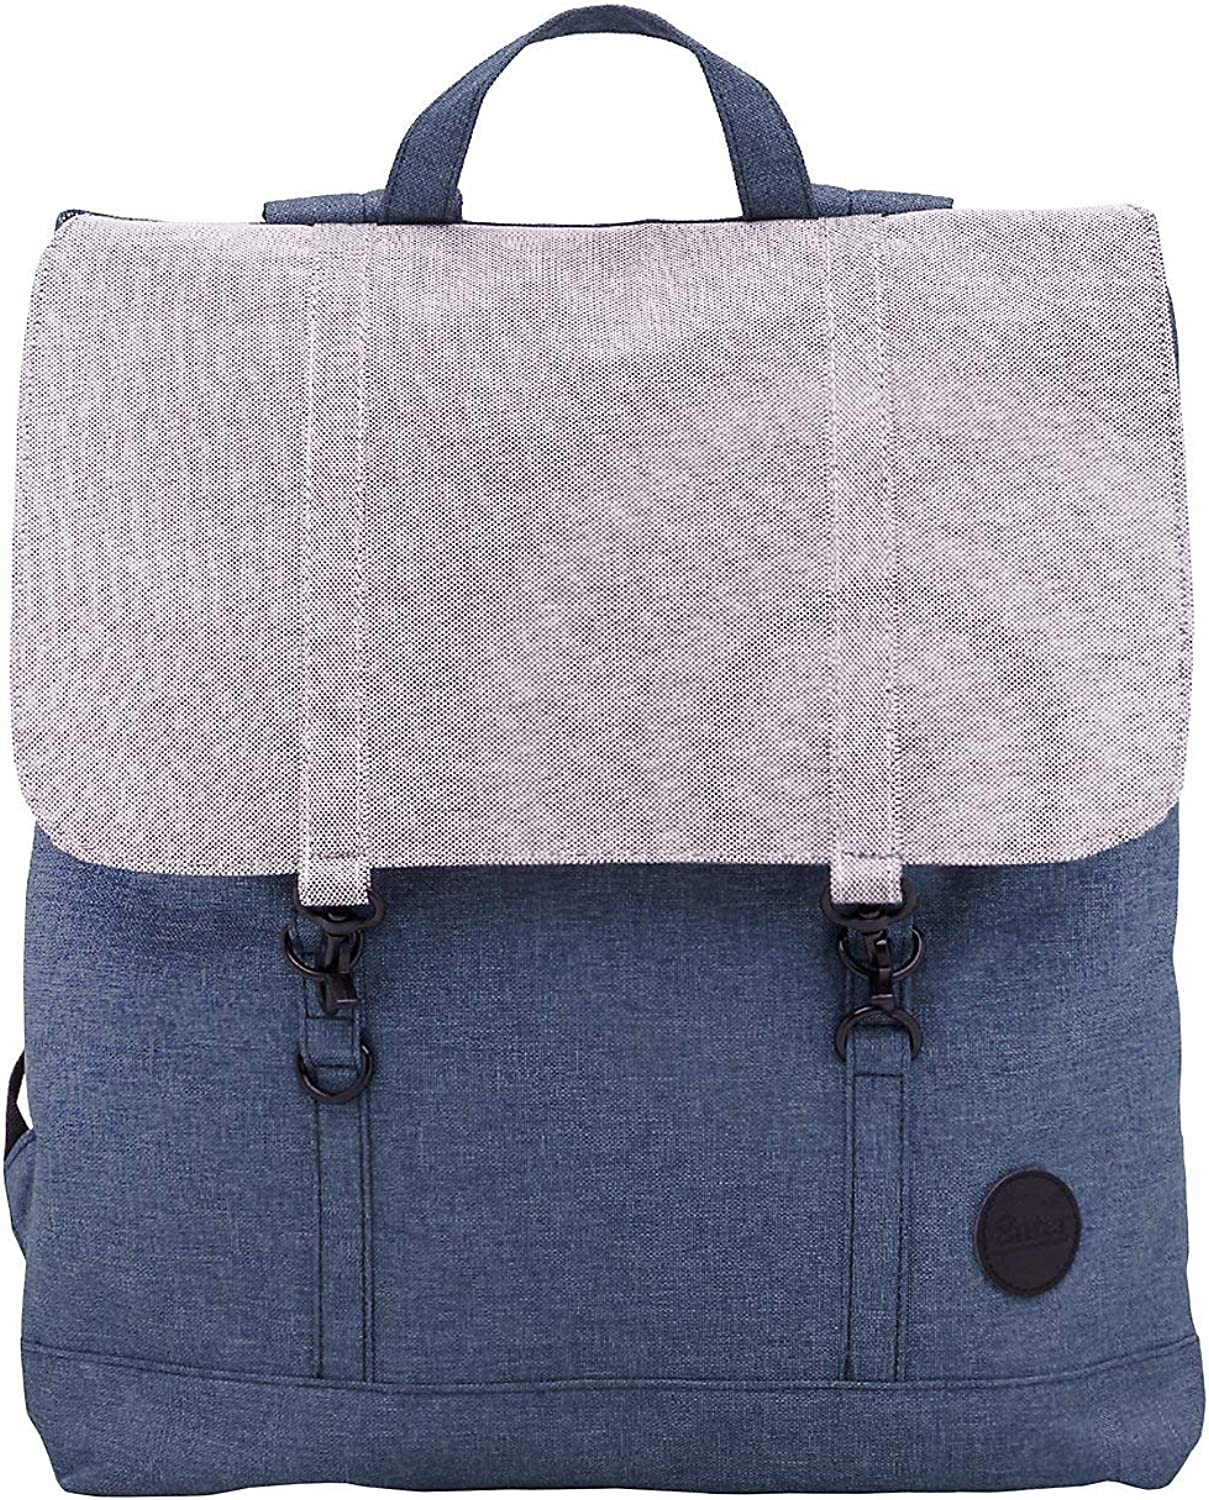 Enter Rucksack City Backpack Lifestyle Collection S 12 l Polycotton